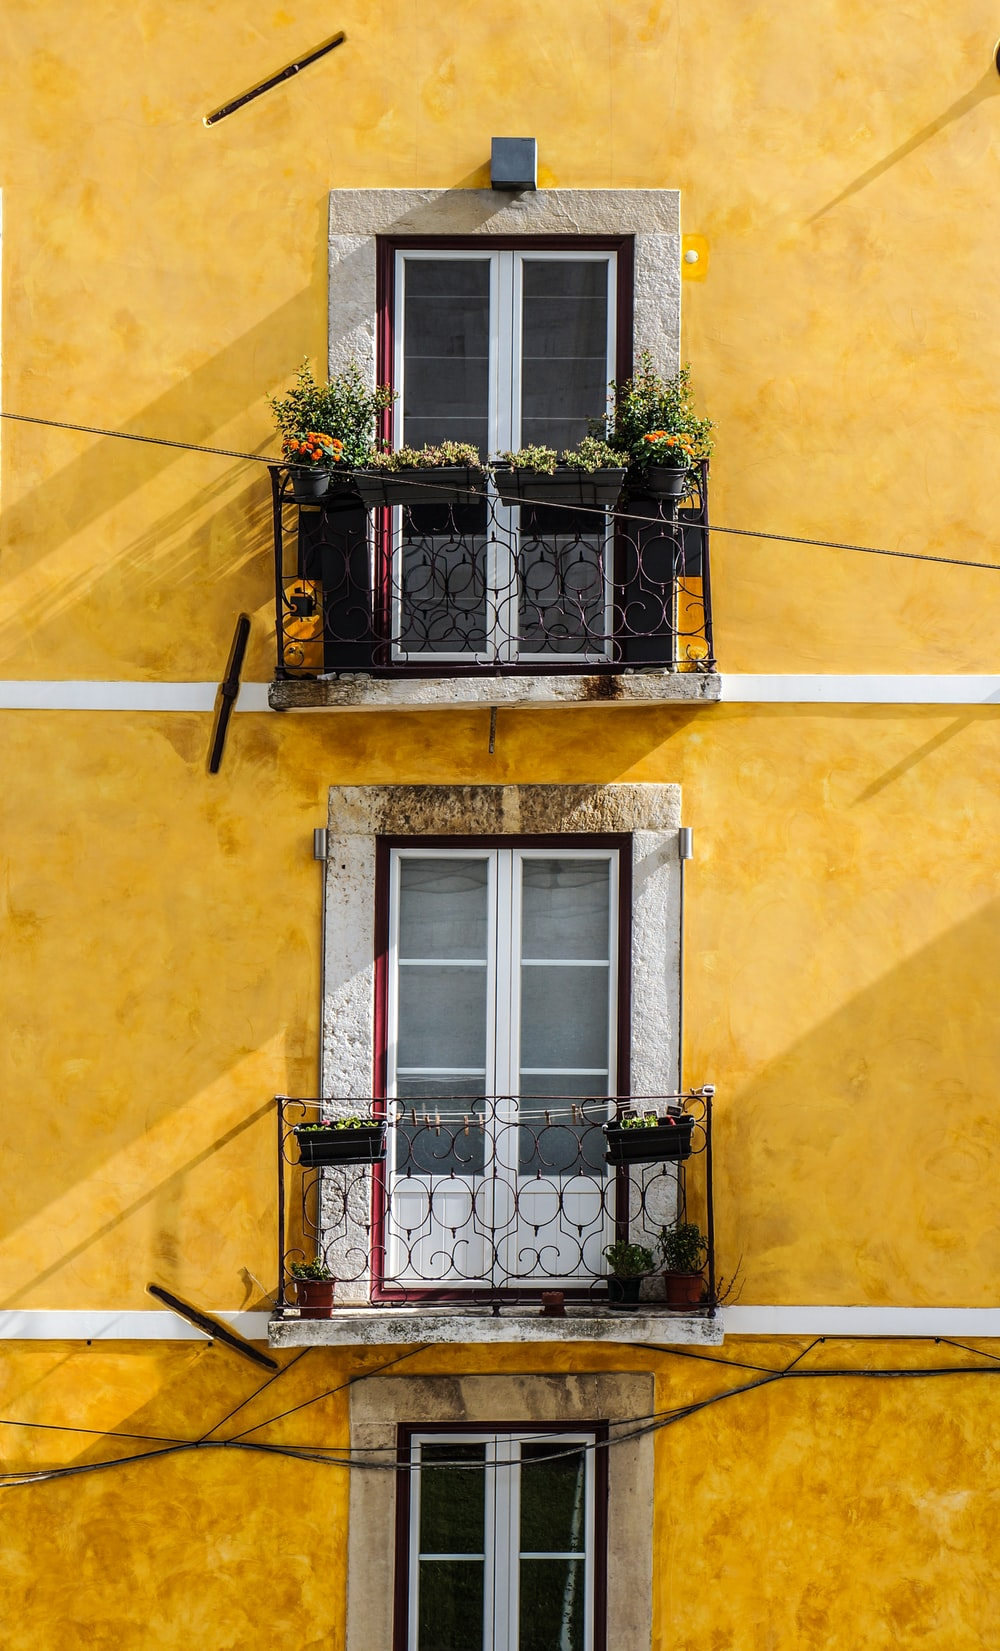 white wooden window panels and yellow painted wall